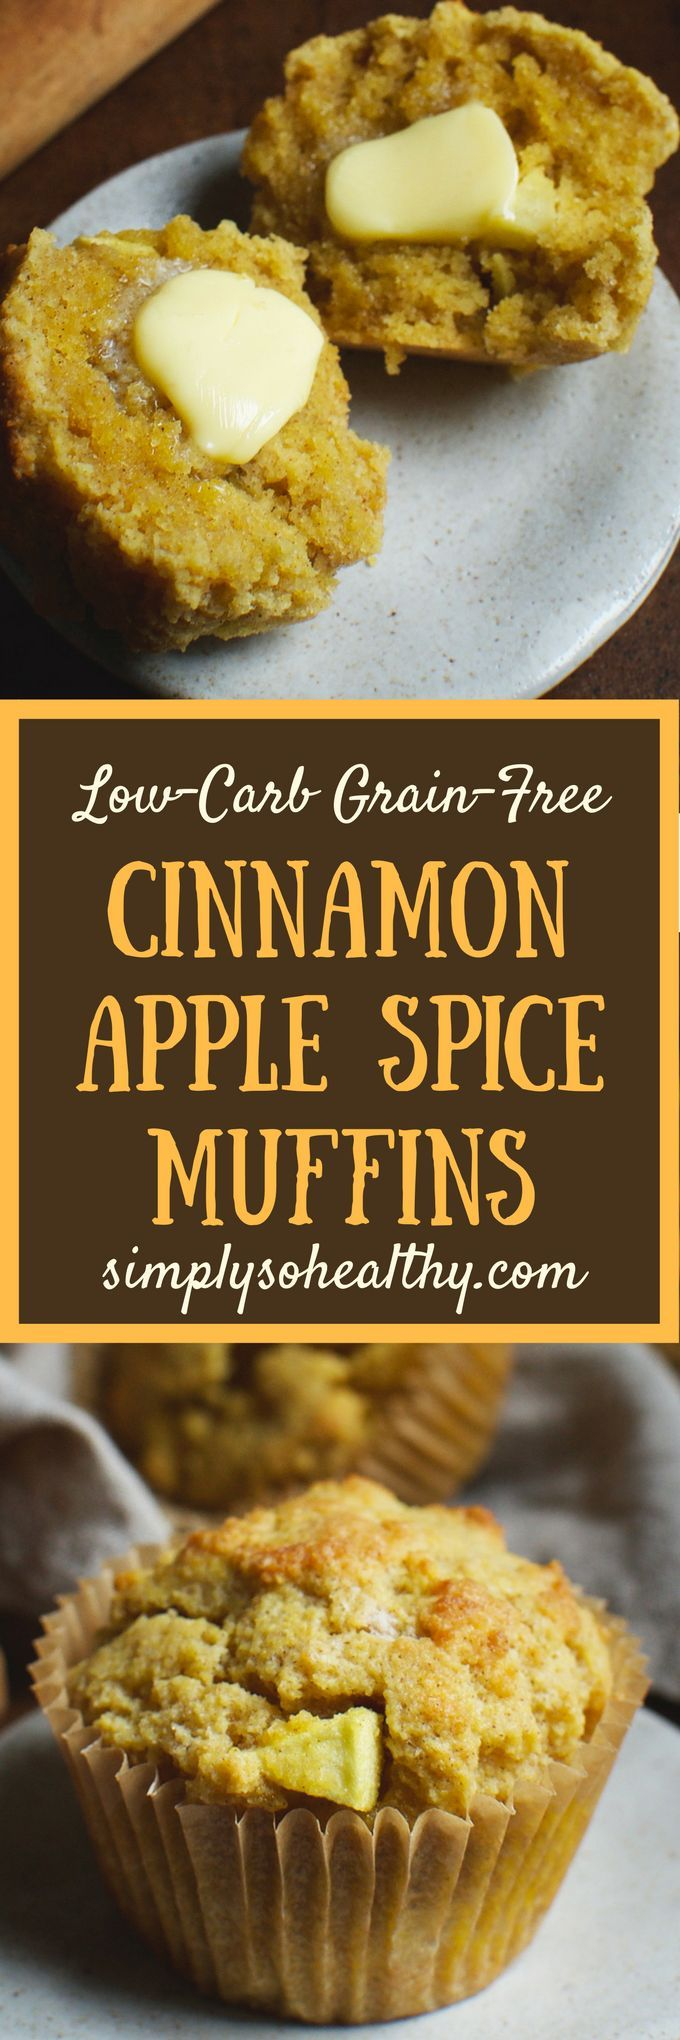 These Low-Carb Cinnamon Apple Spice Muffins are perfect for an autumn breakfast. They can be part of a low-carb, keto, Paleo, Atkins, diabetic, LC/HF, gluten-free, grain-free or Banting diet. #lowcarbrecipe #lowcarbmuffins